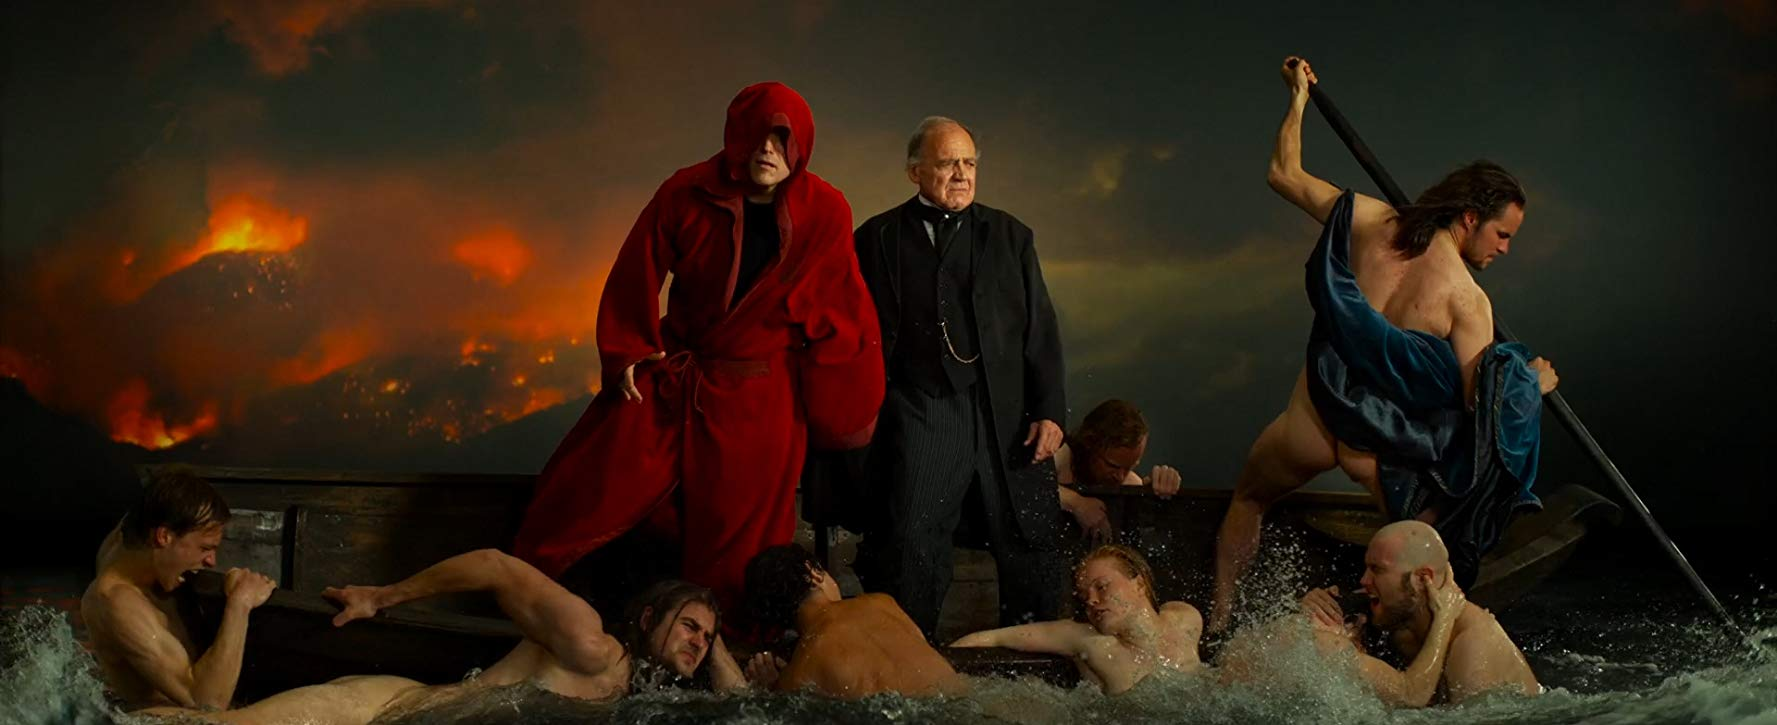 On 'The House That Jack Built,' Art Monsters and Not-So